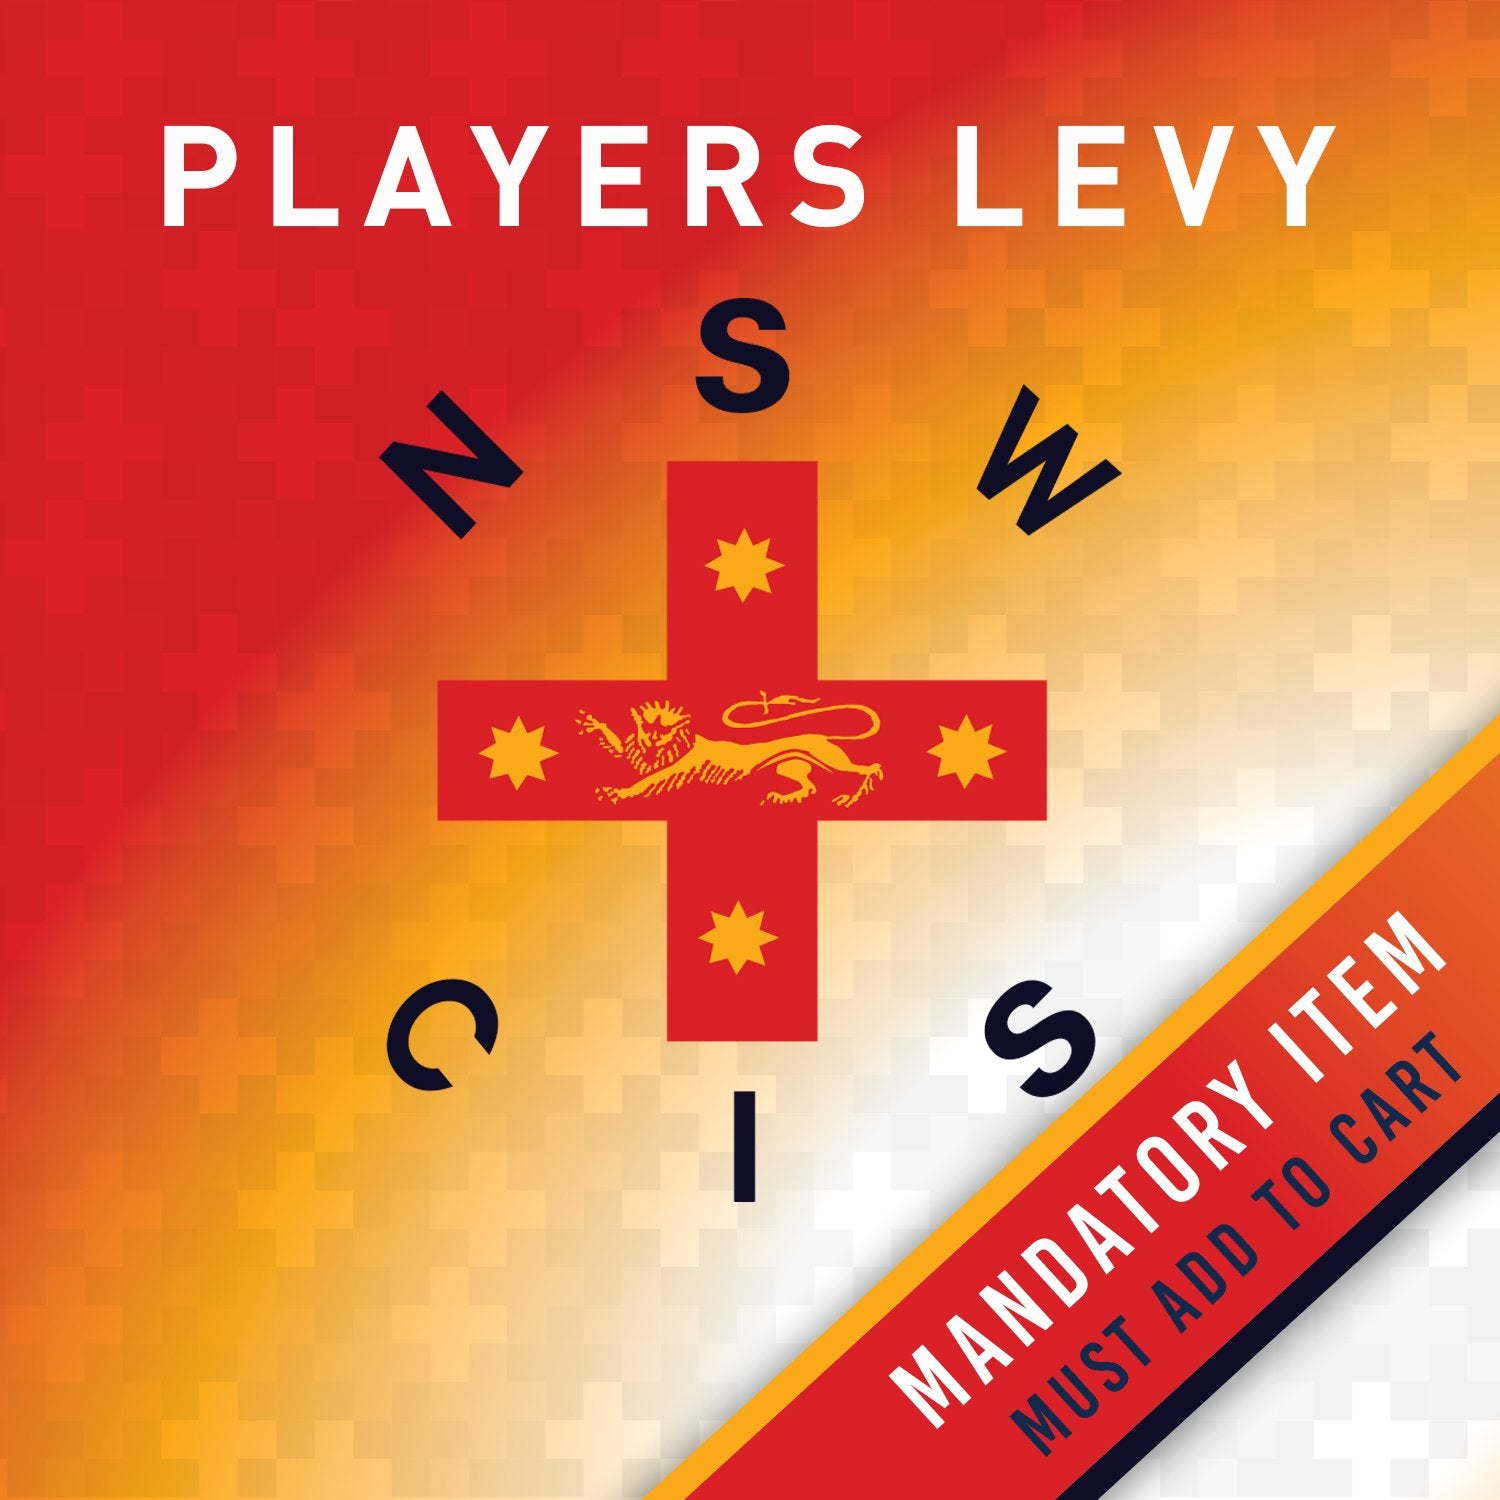 MANDATORY ITEM - PLAYERS LEVY - NSW CIS Secondary Boys Baseball